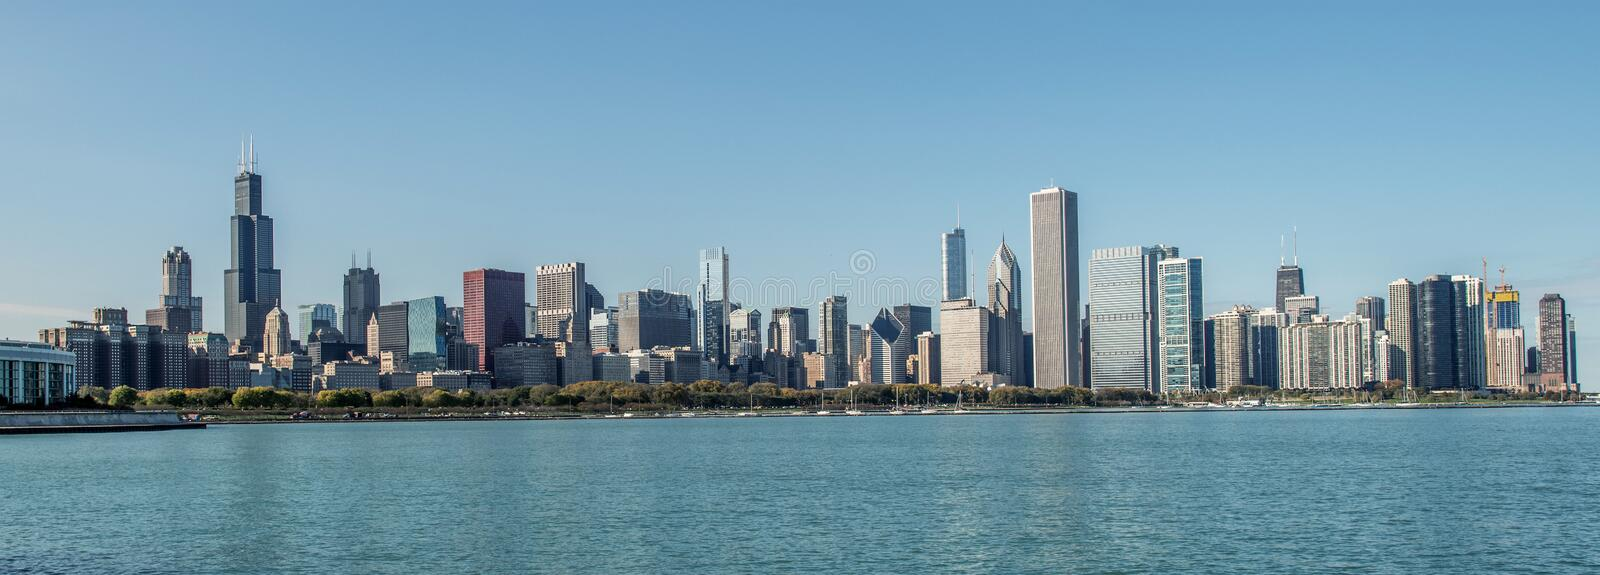 City of Chicago Skyline stock image